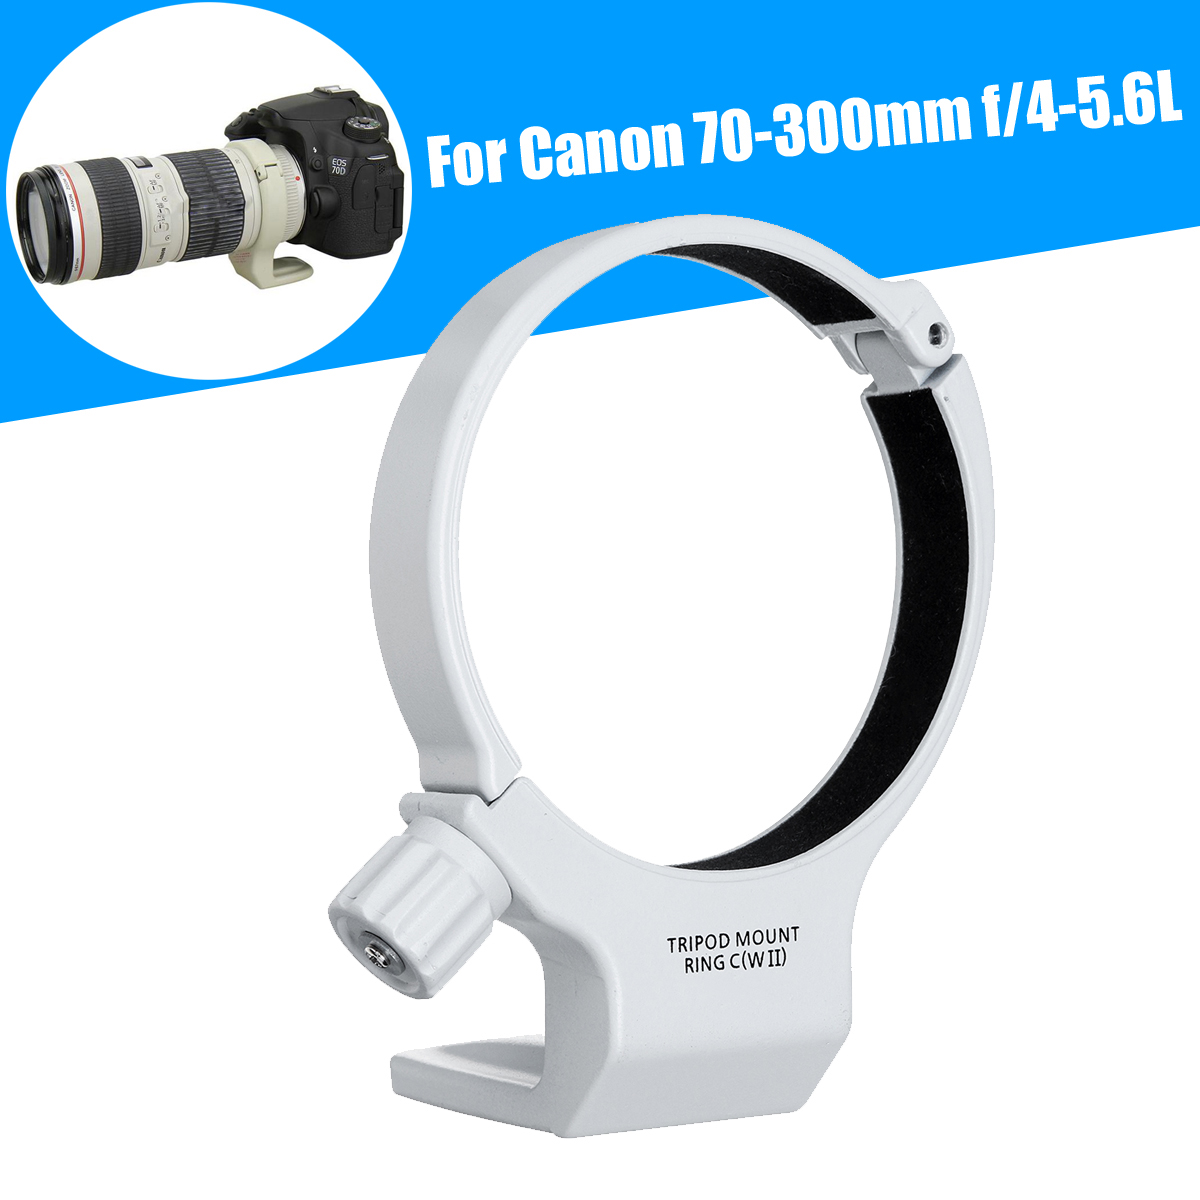 Hot Sale Leory Tripod Mount Collar Ring C Wii For Canon Ef 70 Module Mini 360 Dc Buck Converter Step Down 475v 23v To 1v 17v 17x11x38mm Mini360 New Lm2596 300mm F 4 56l Is Usm Gray White Metal